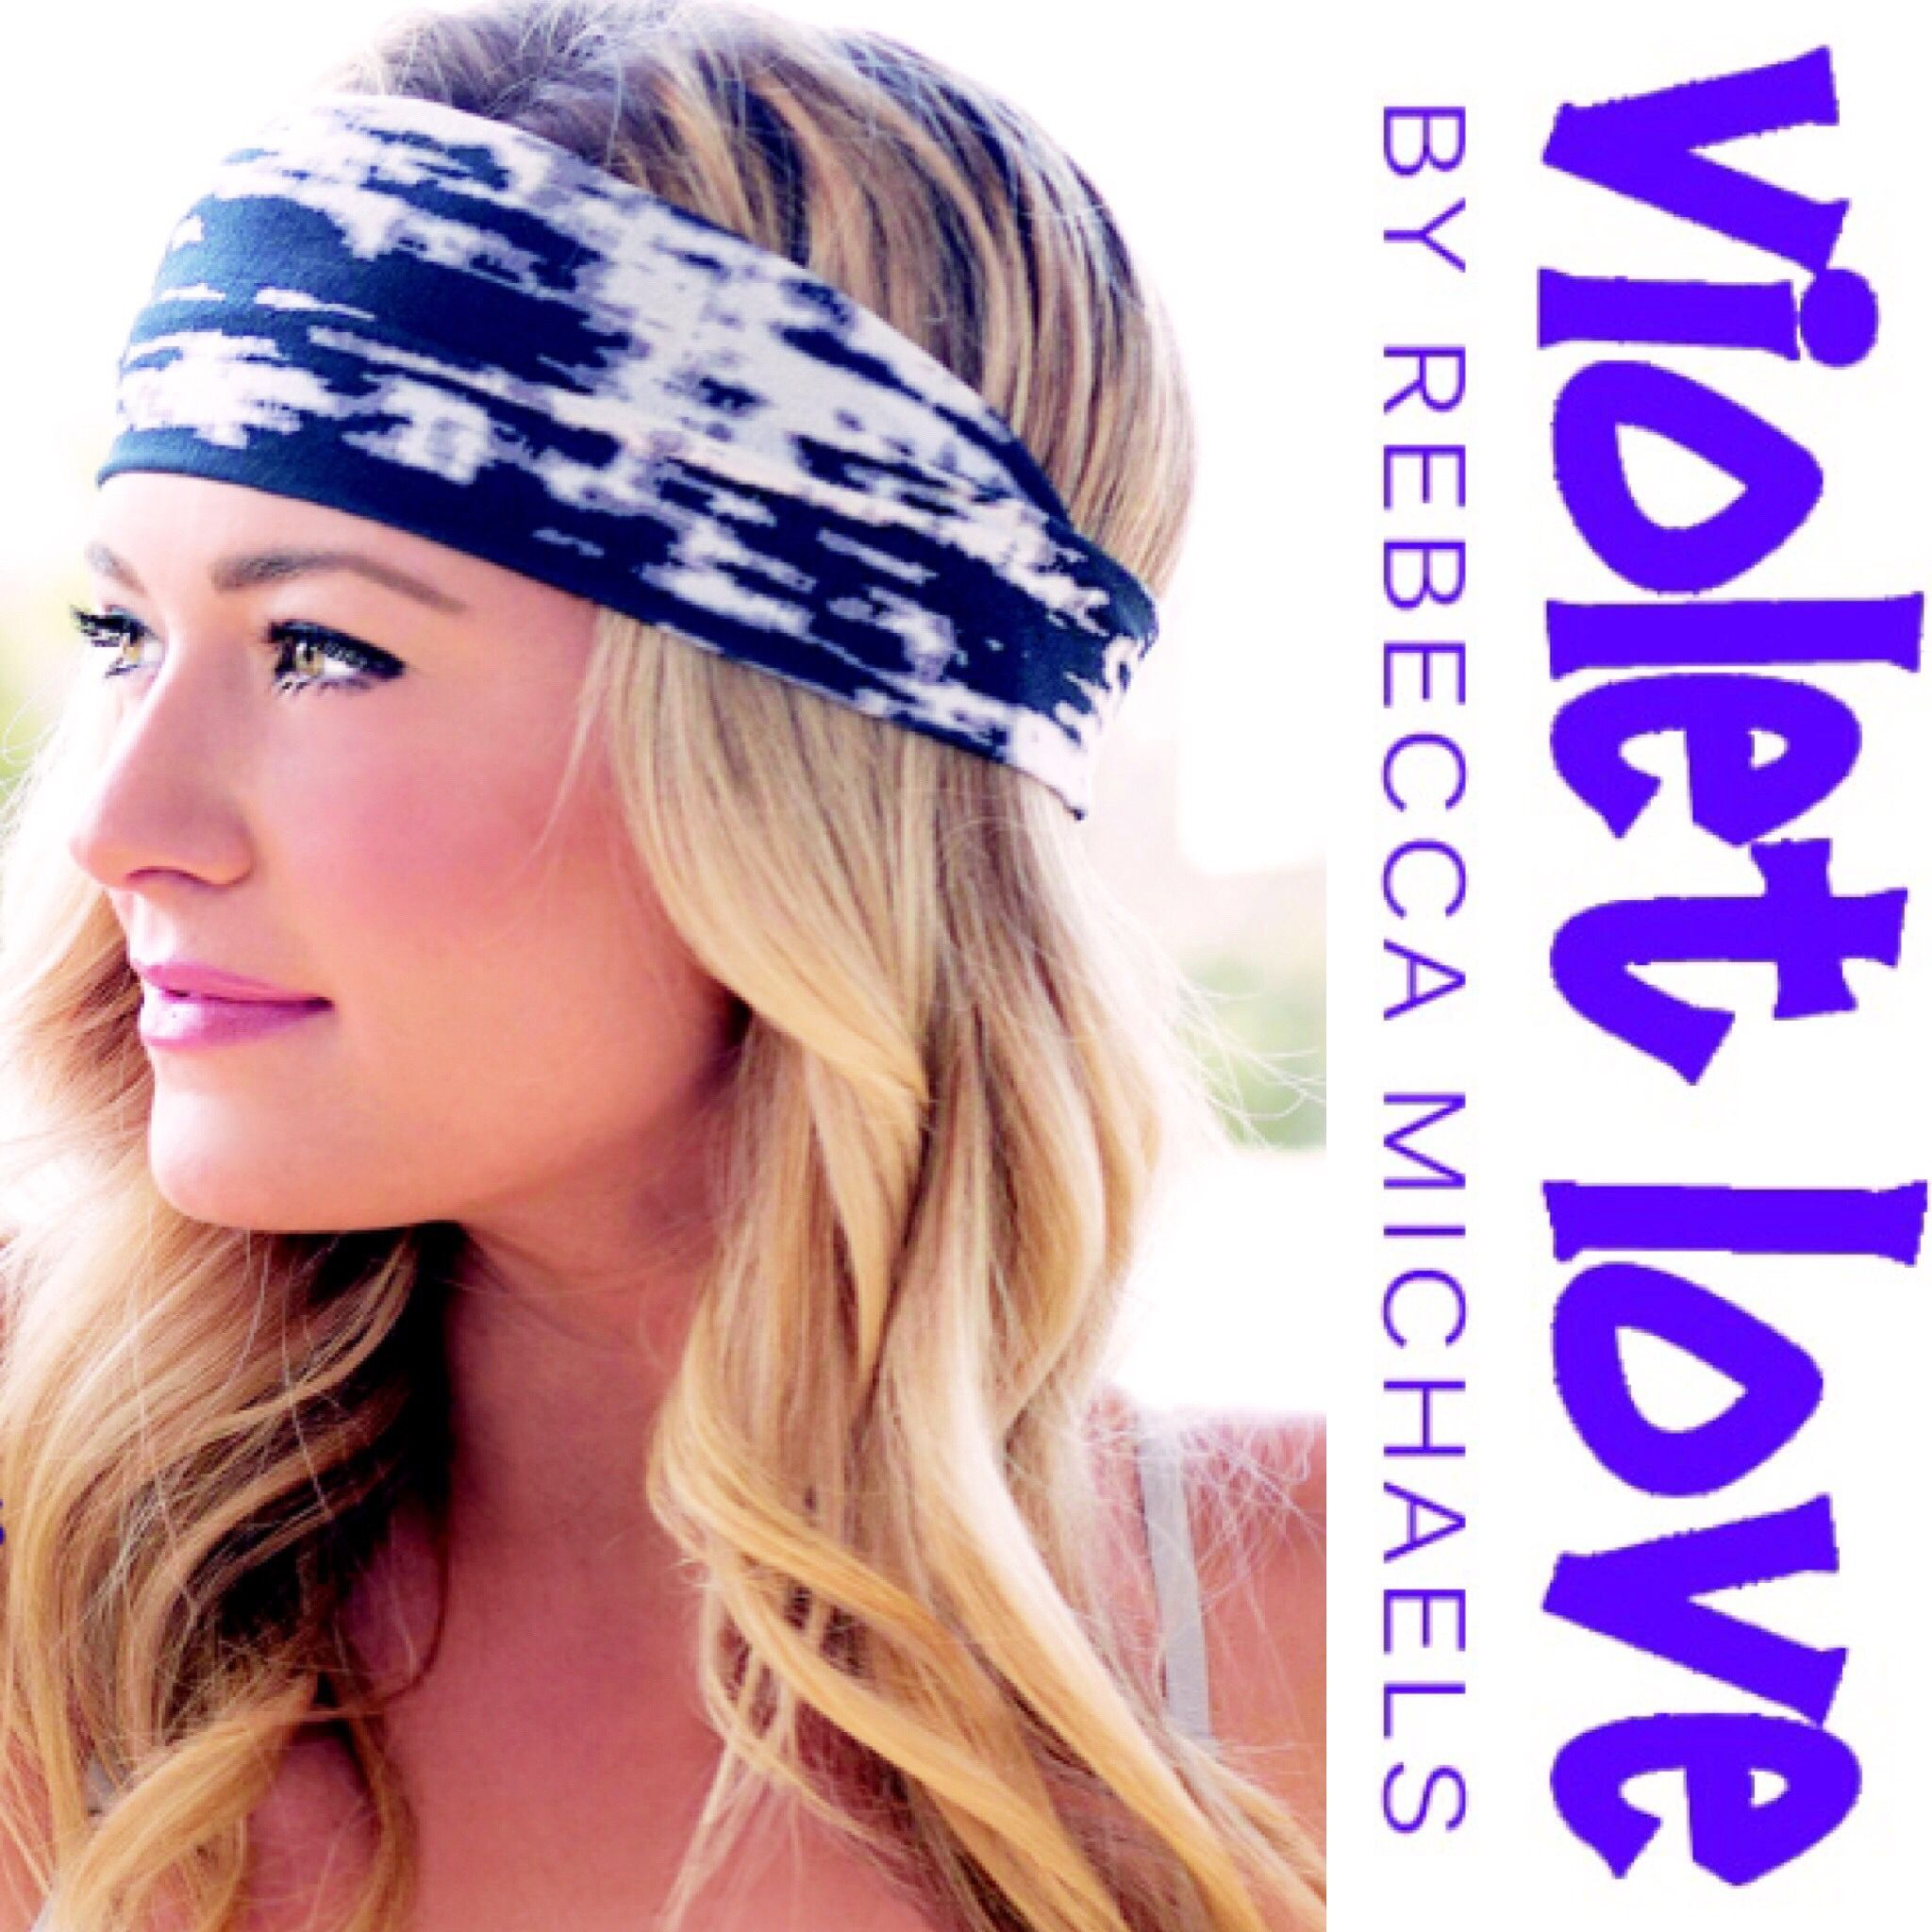 So excited to share that Violet Love headbands will be in  MIZ09. I picked  3 designs and each subscriber will get 1 of them.  quarterly edf7a3b4698